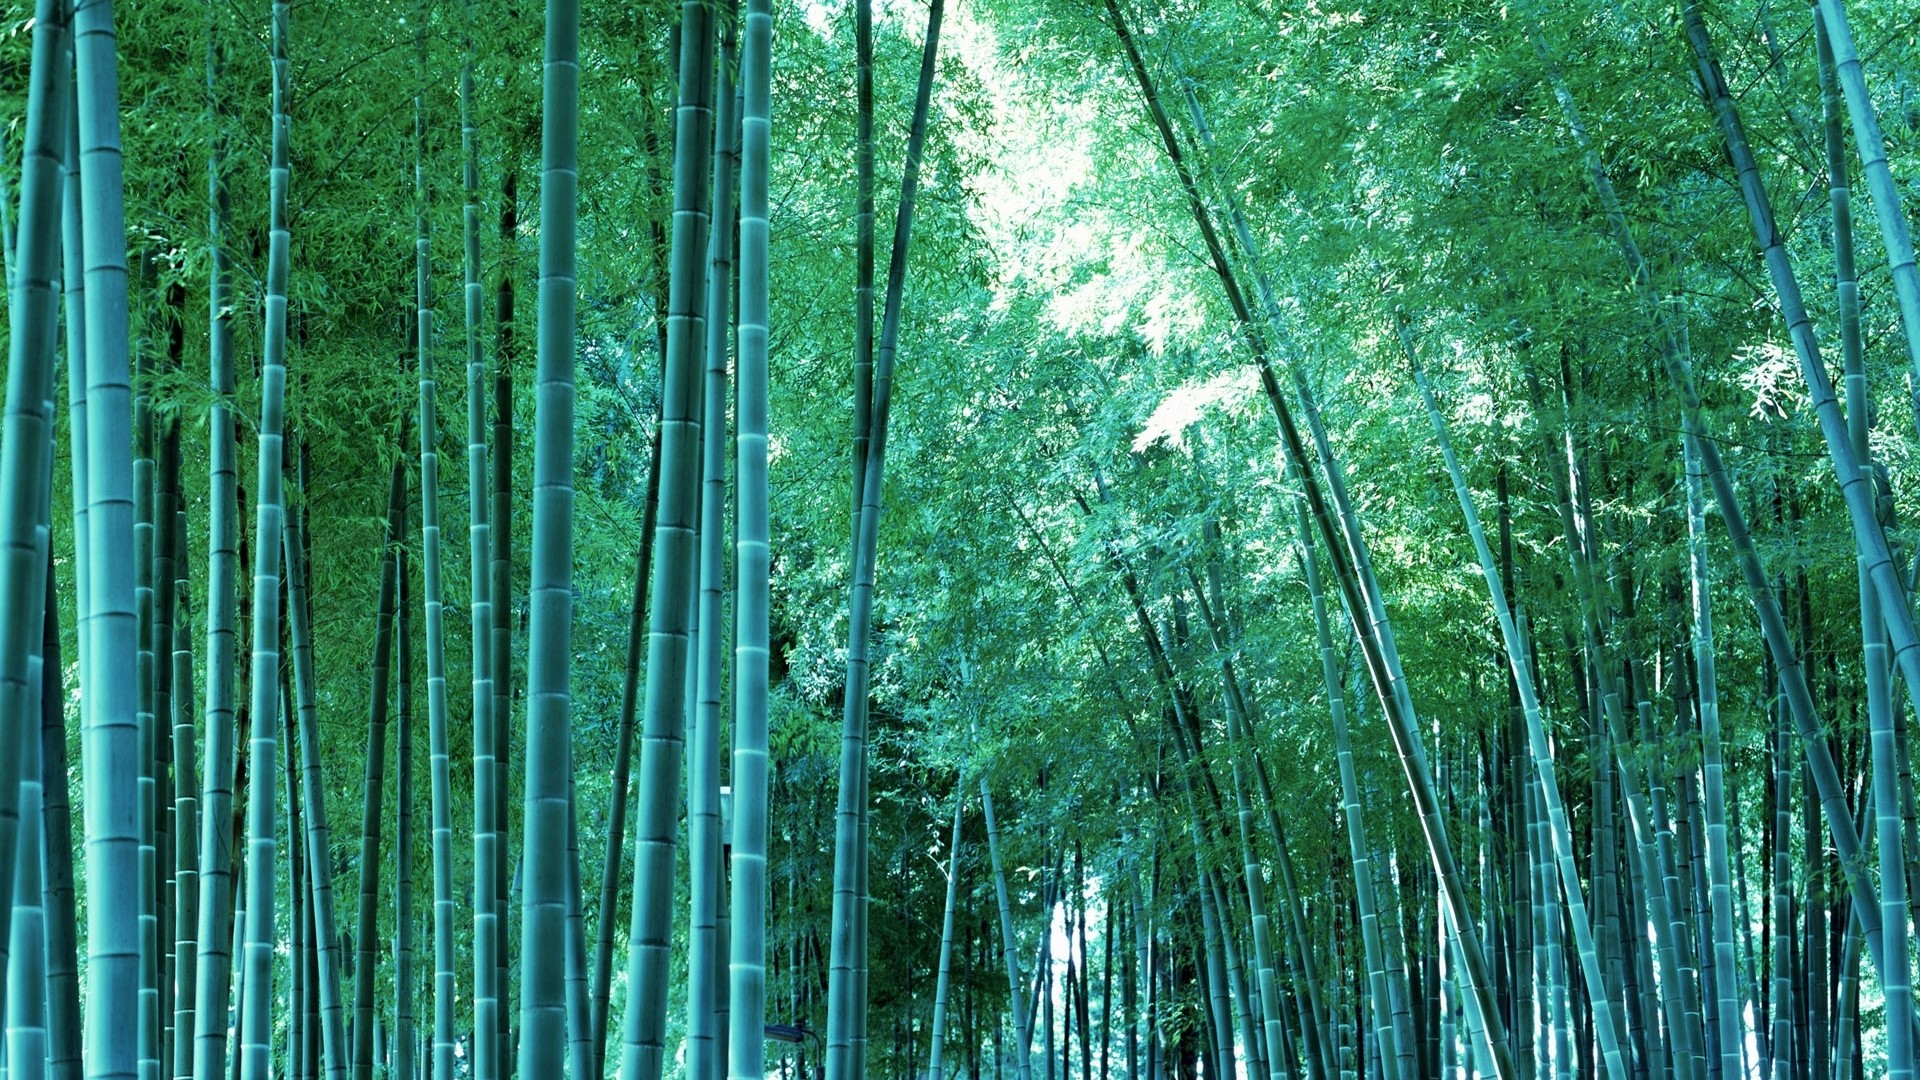 Bamboo wallpaper -? download free amazing wallpapers for des.